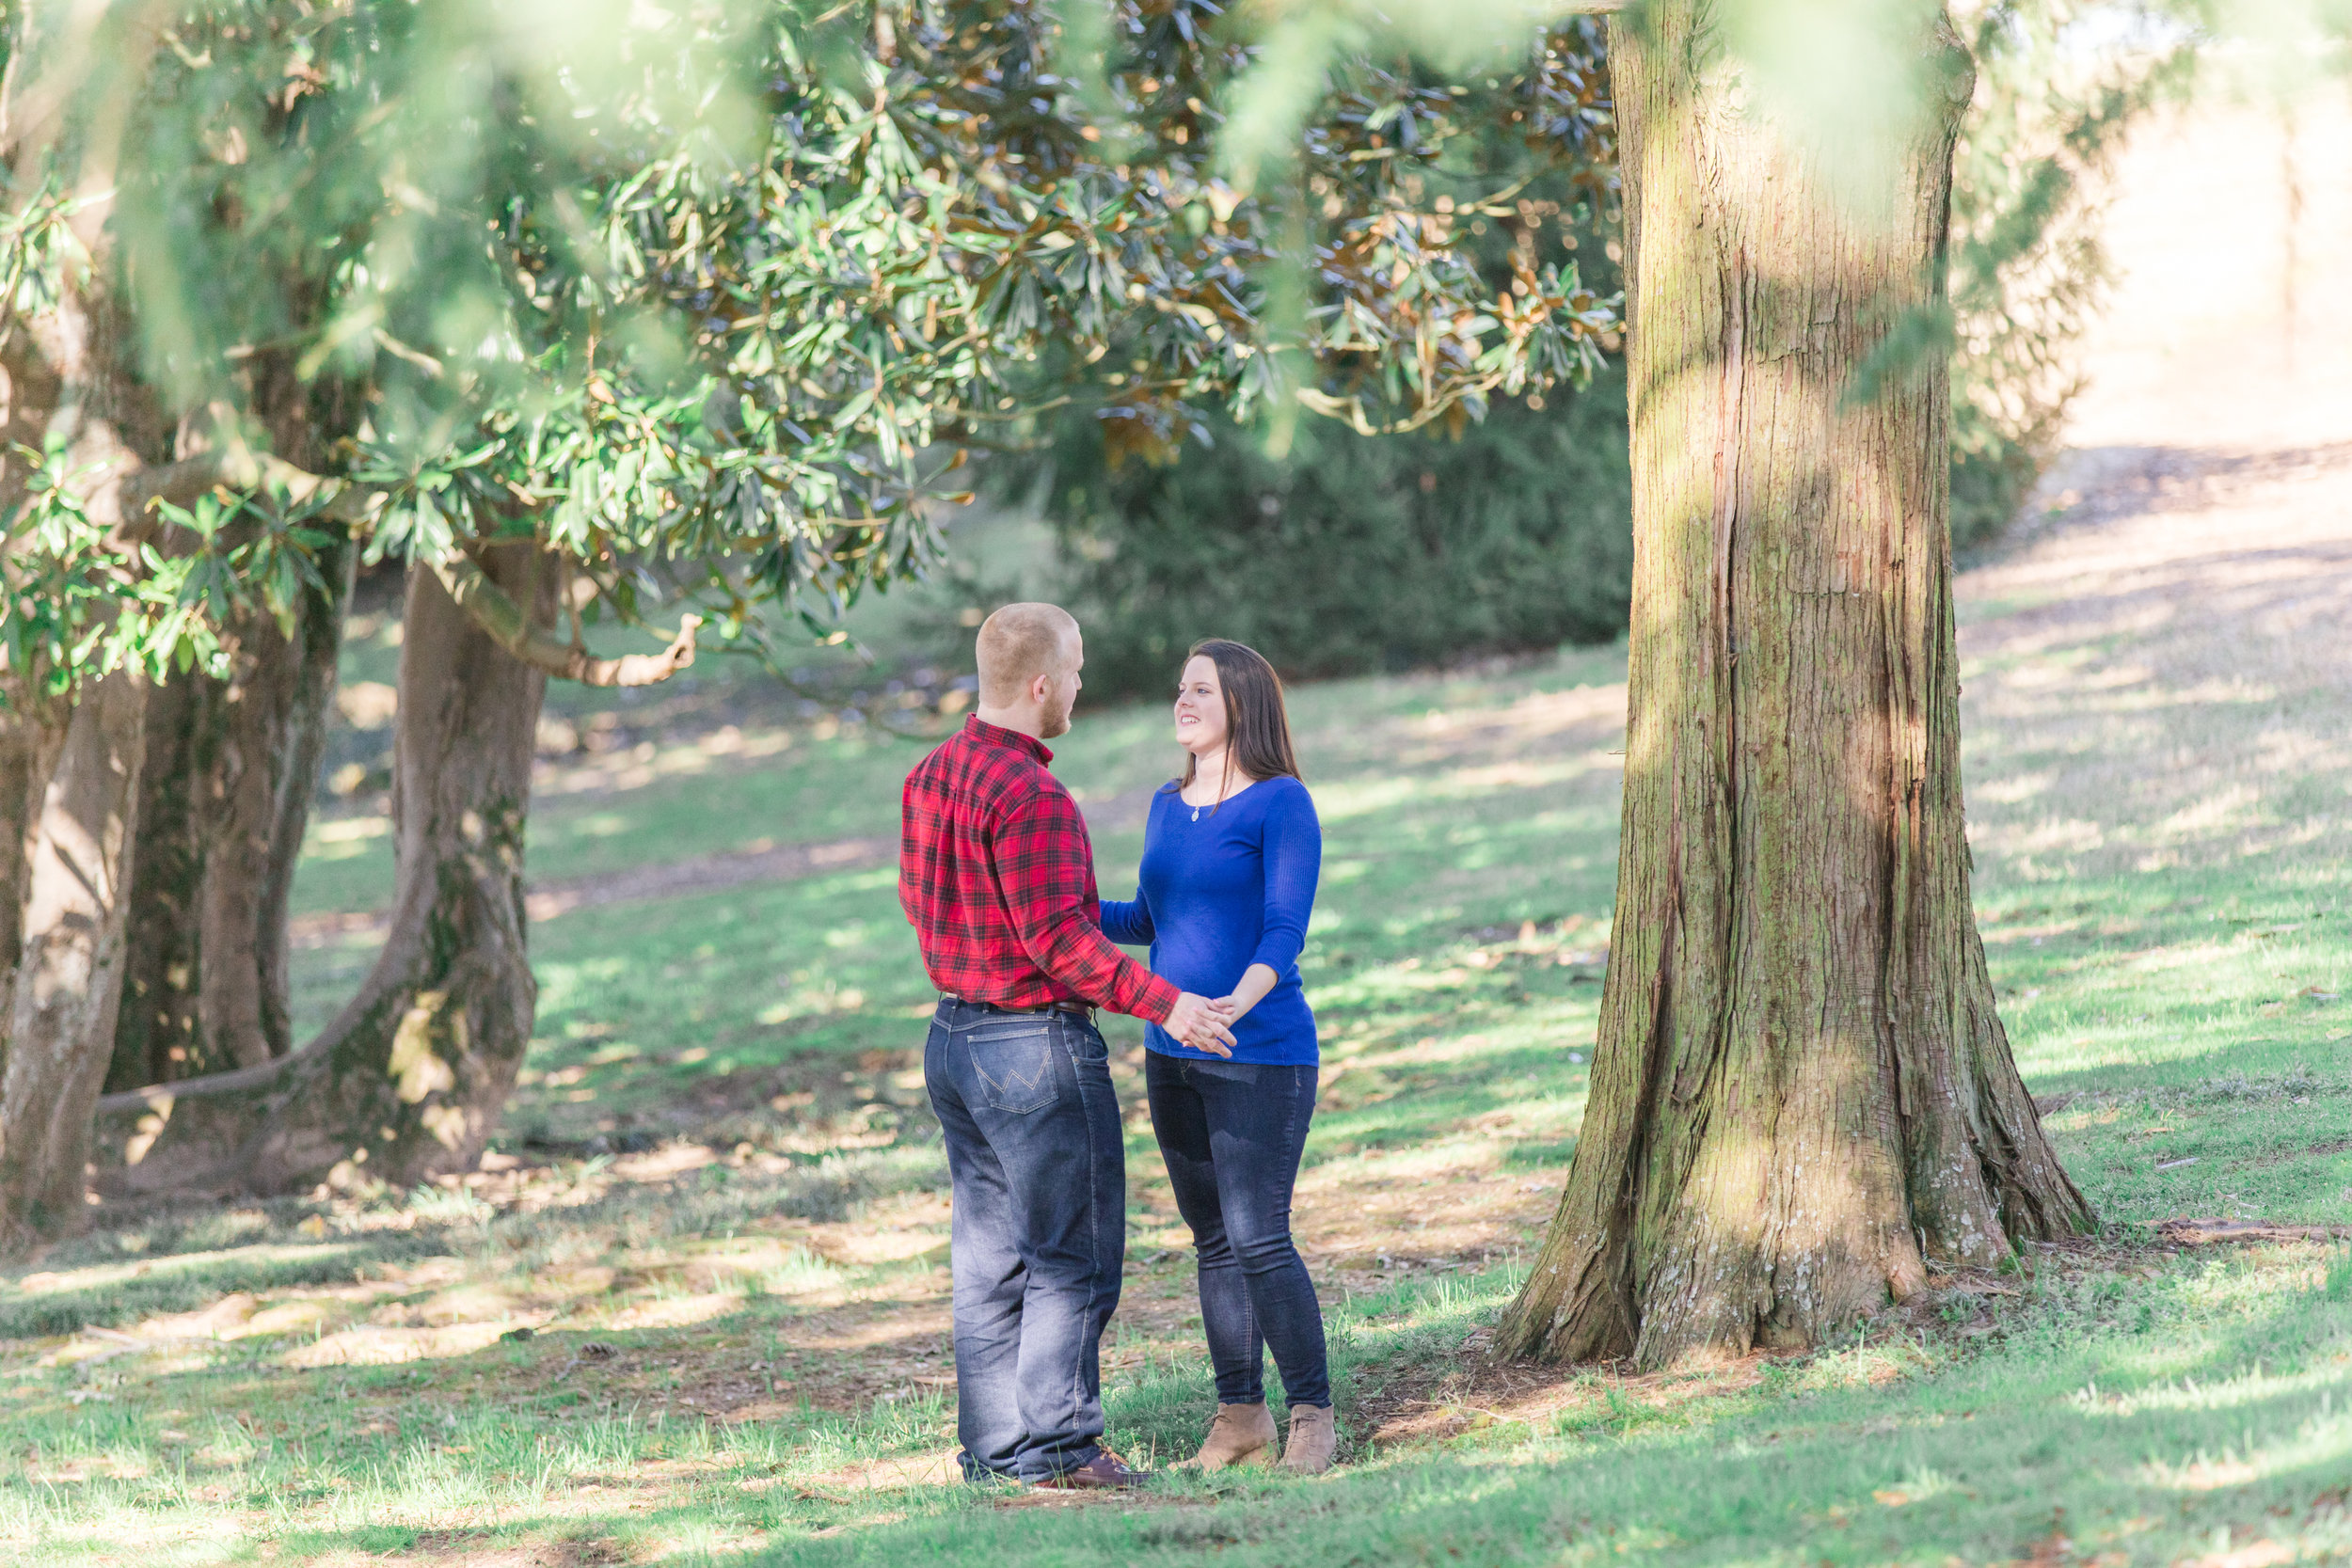 mjmp maymont tuckahoe plantation engagement photo-15.jpg